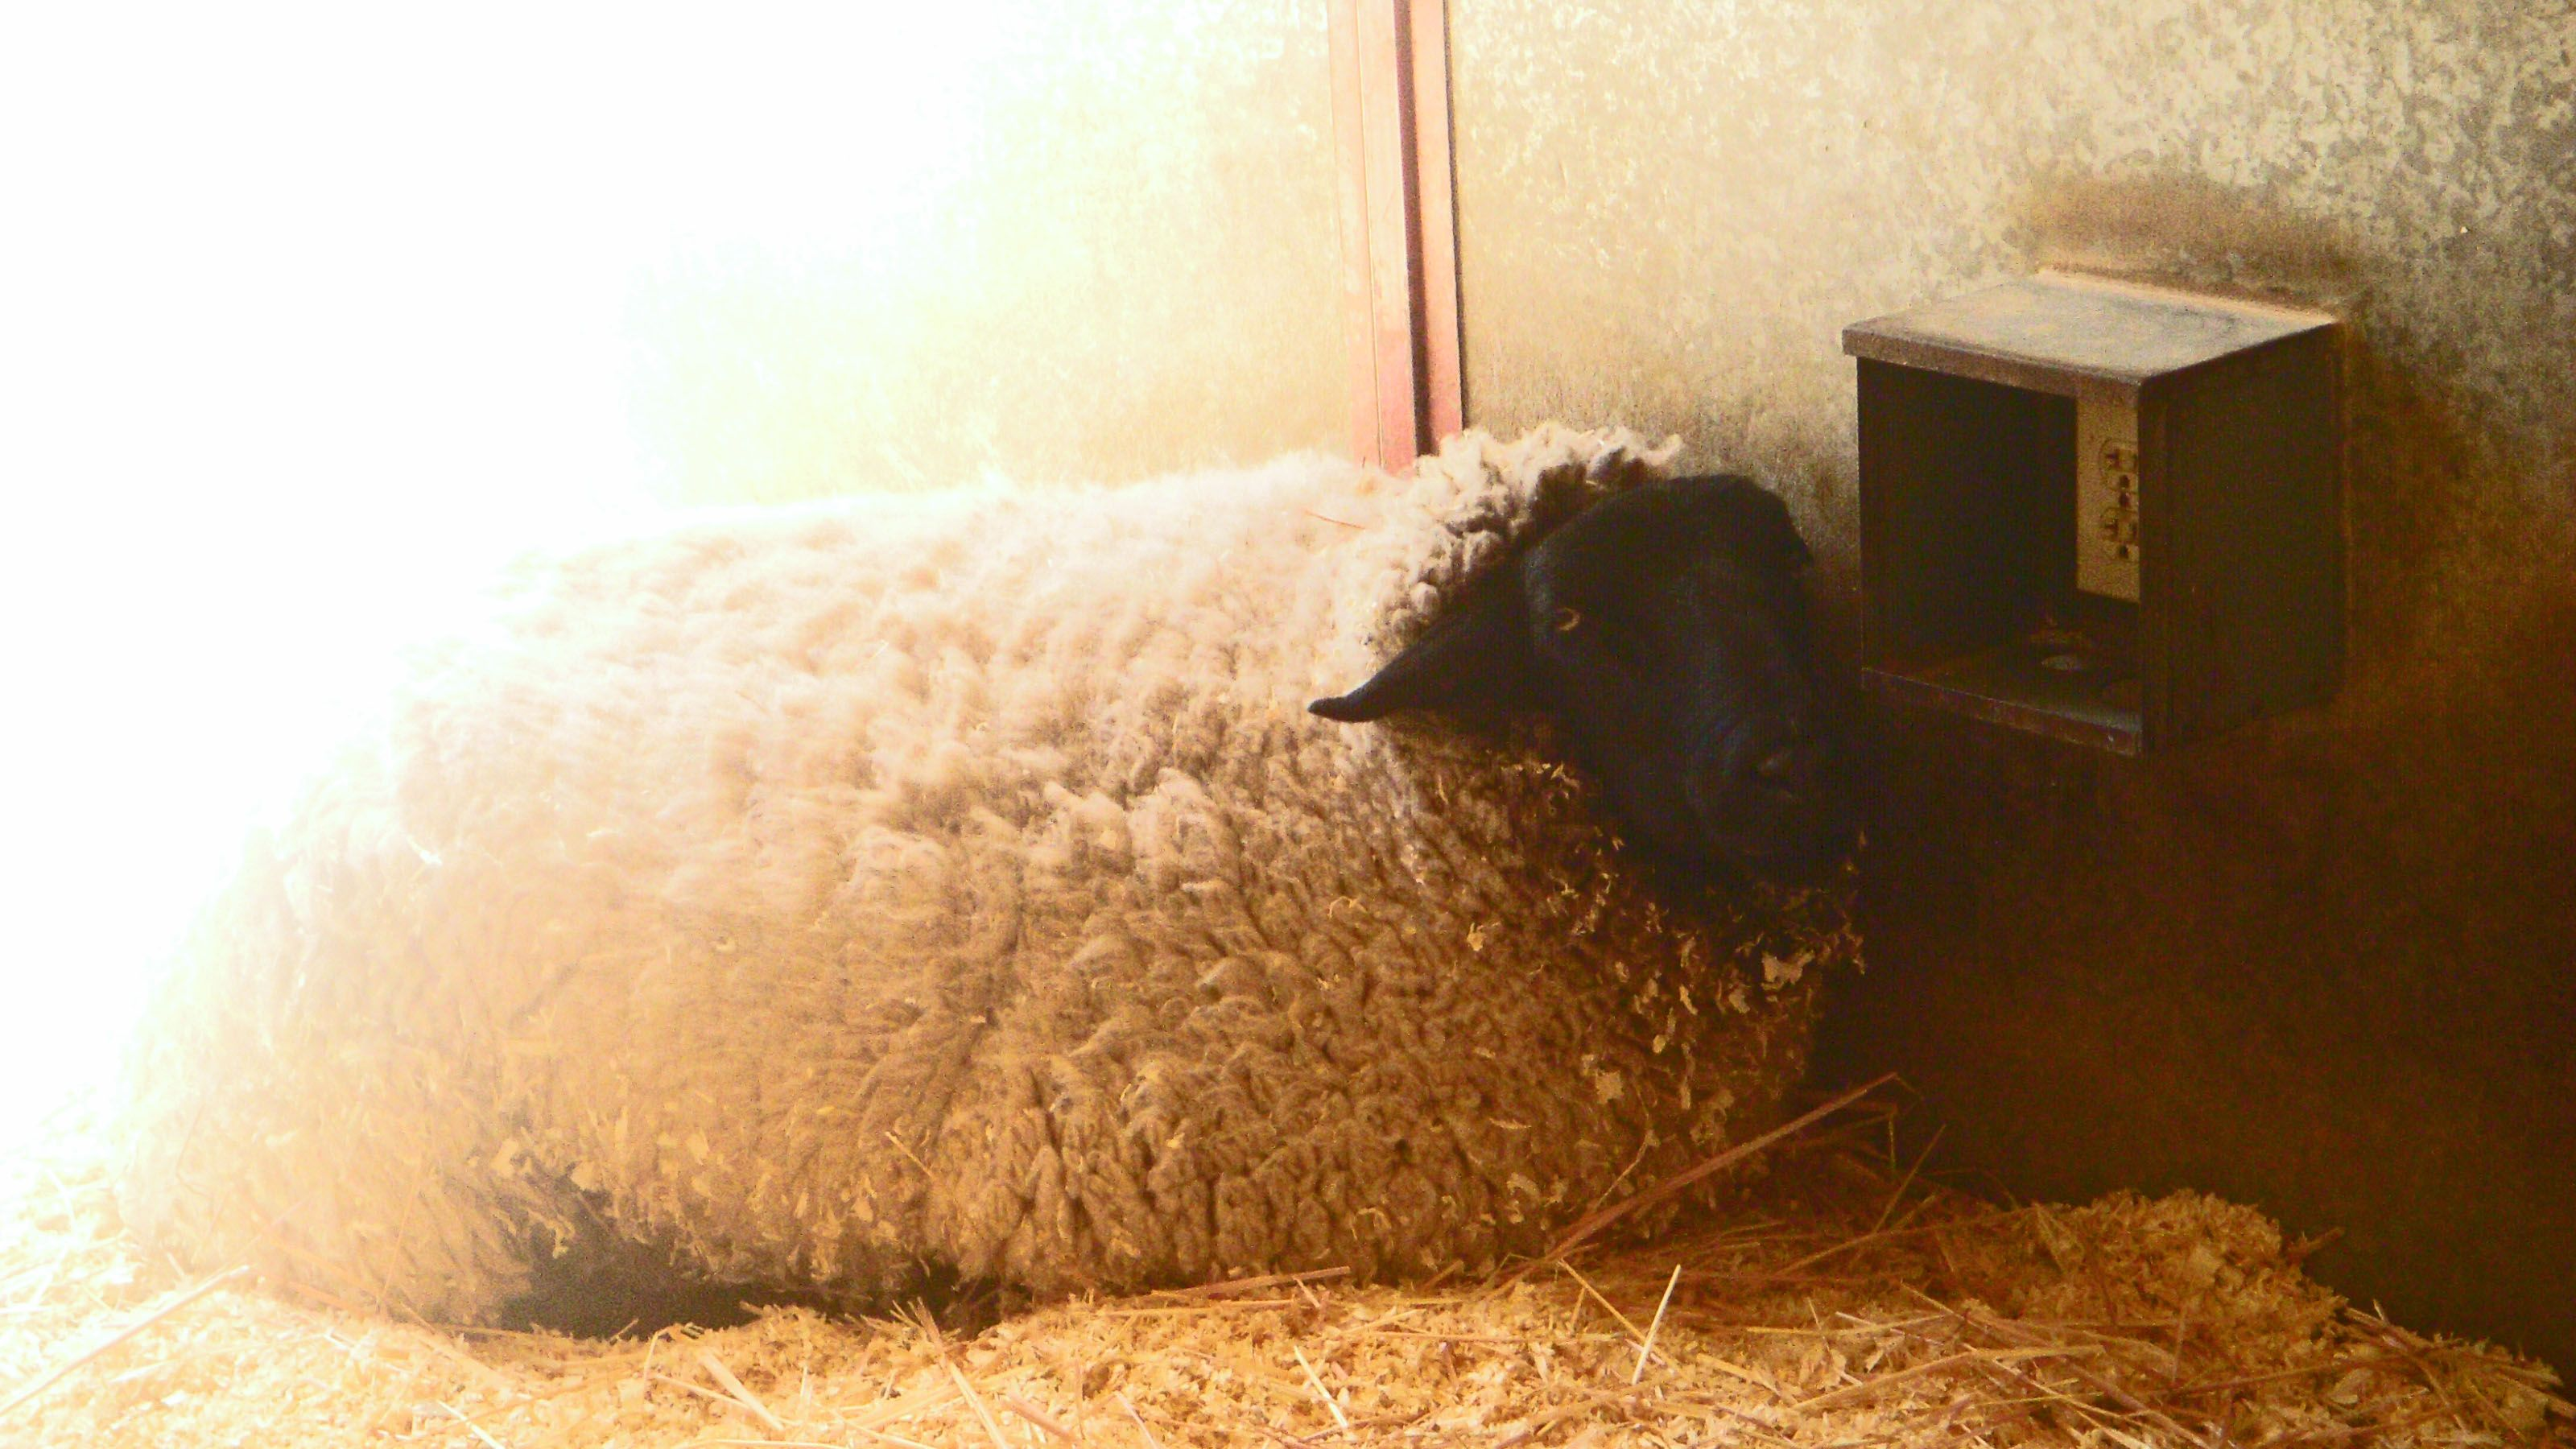 Black Sheep with White Wool